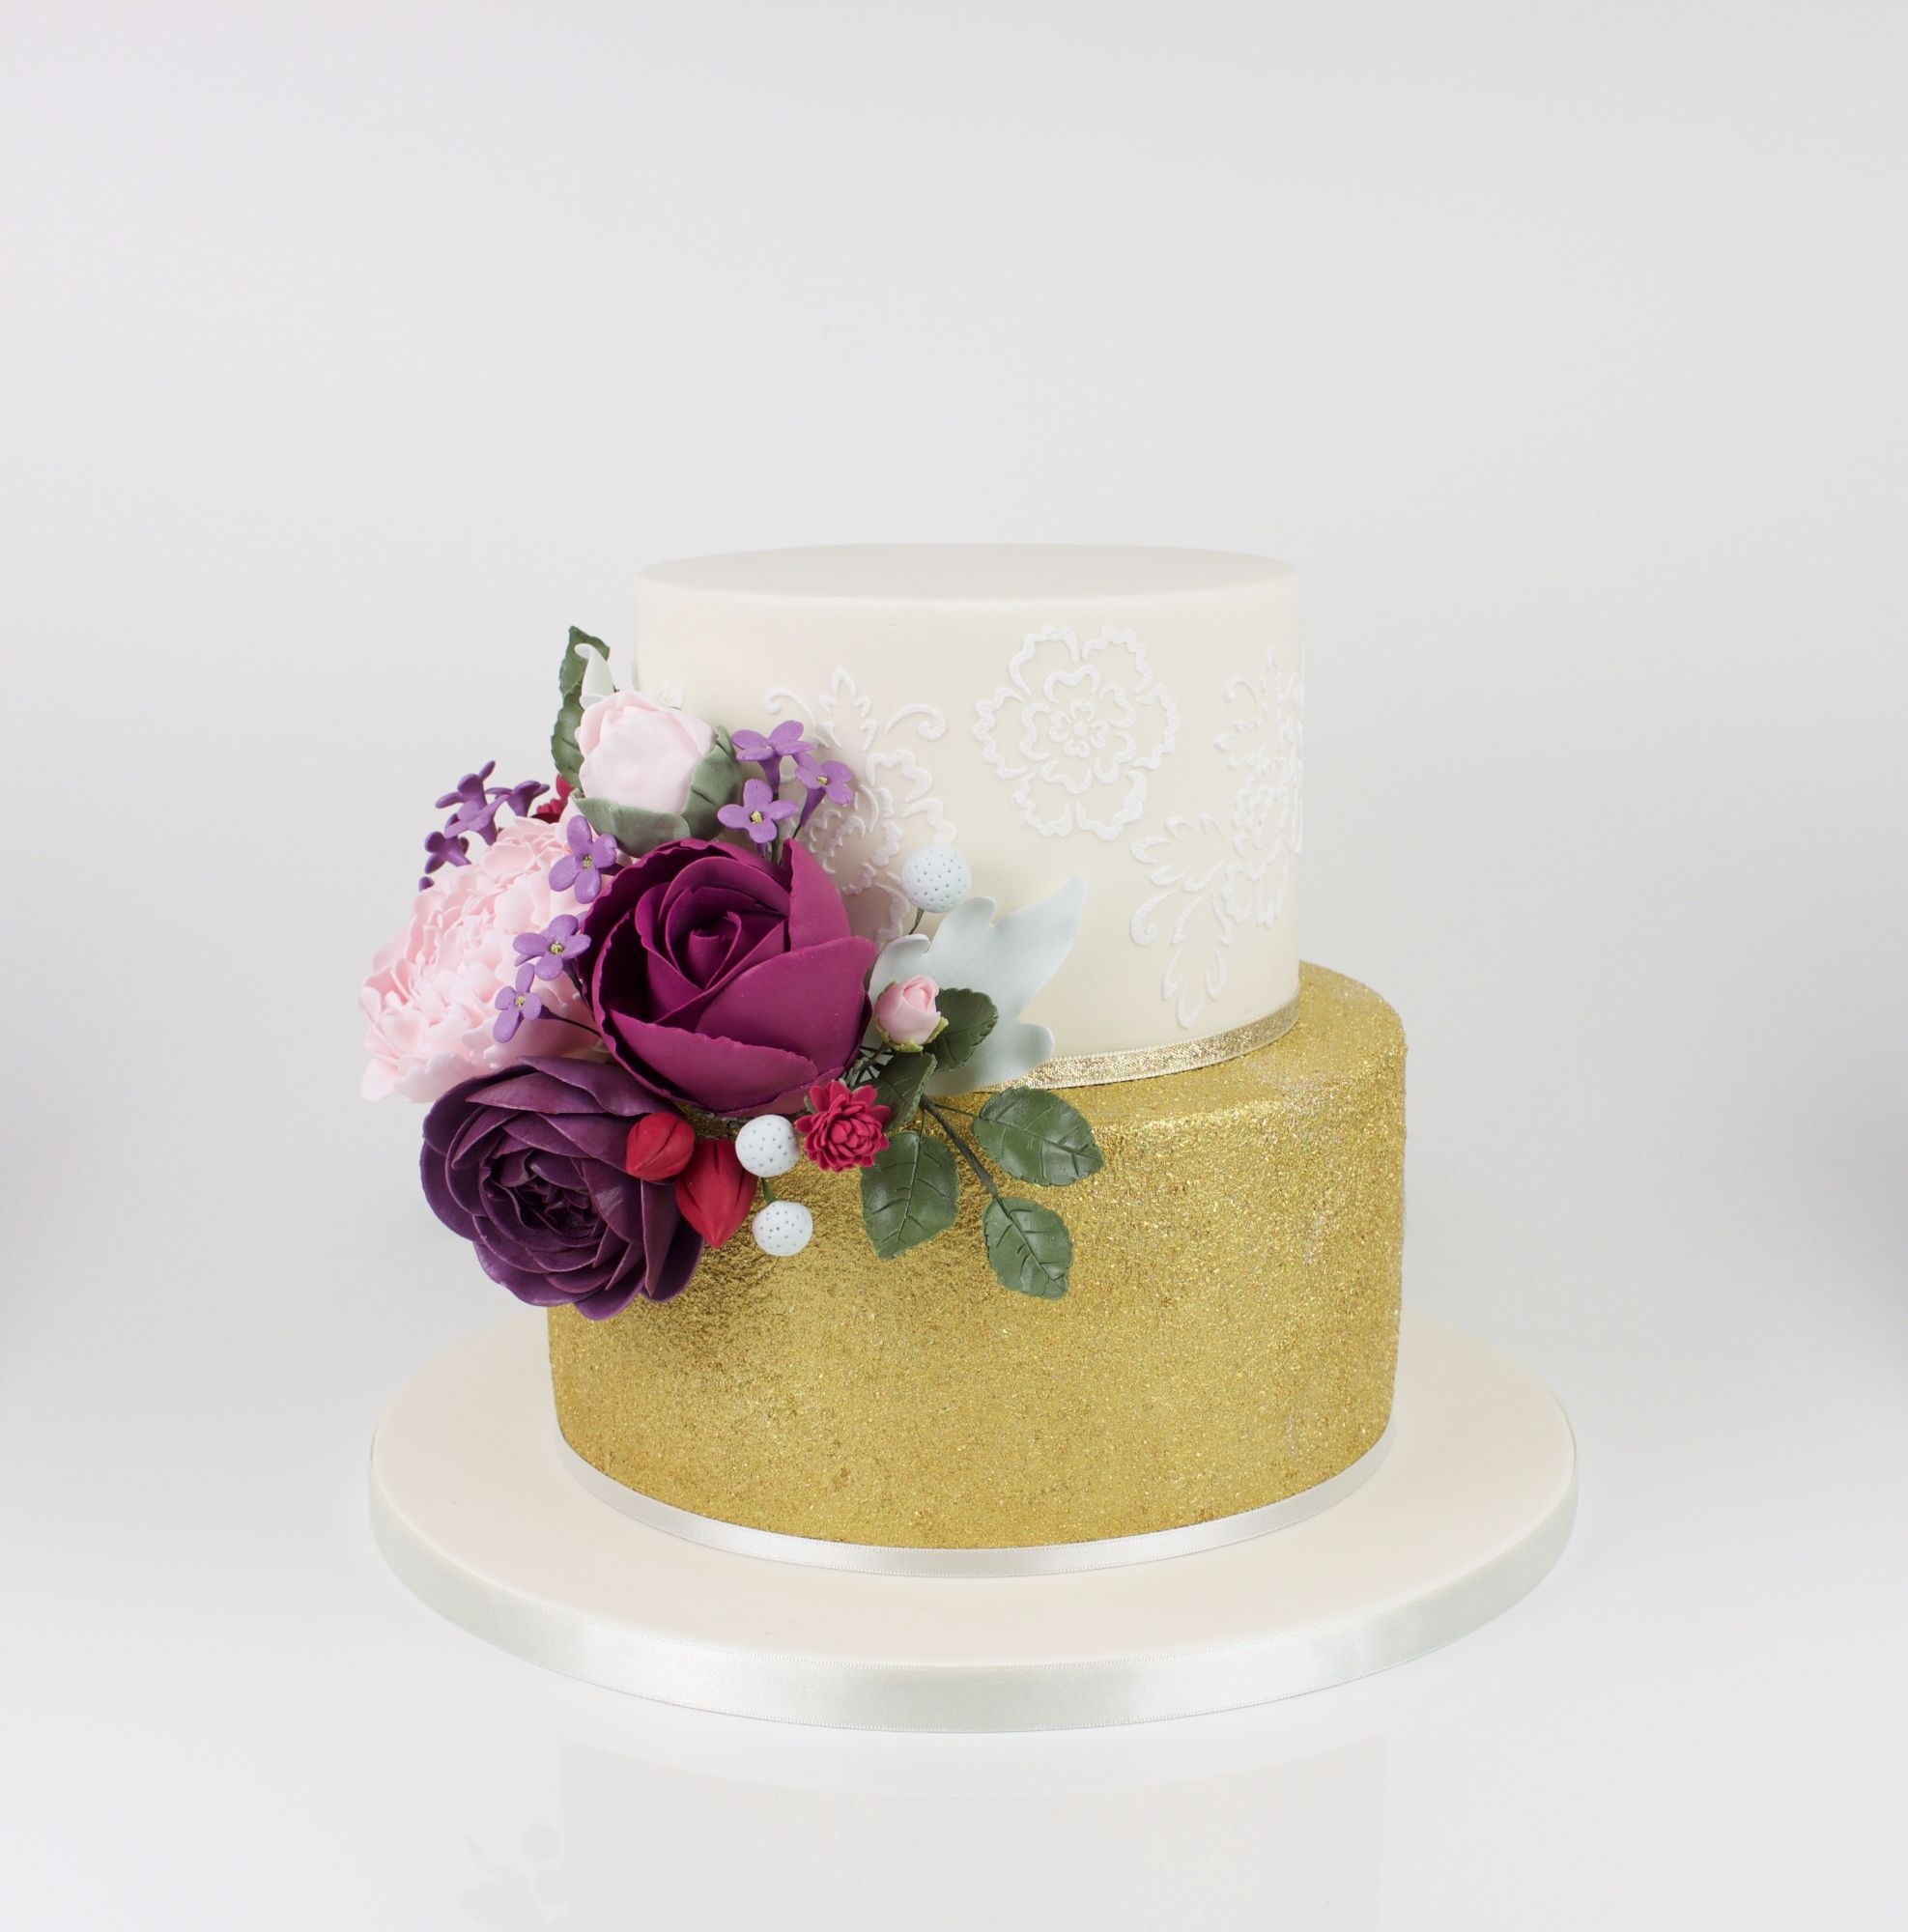 2 tiers gold glitter cake with brush embroidery and dark purples and pinks flowers